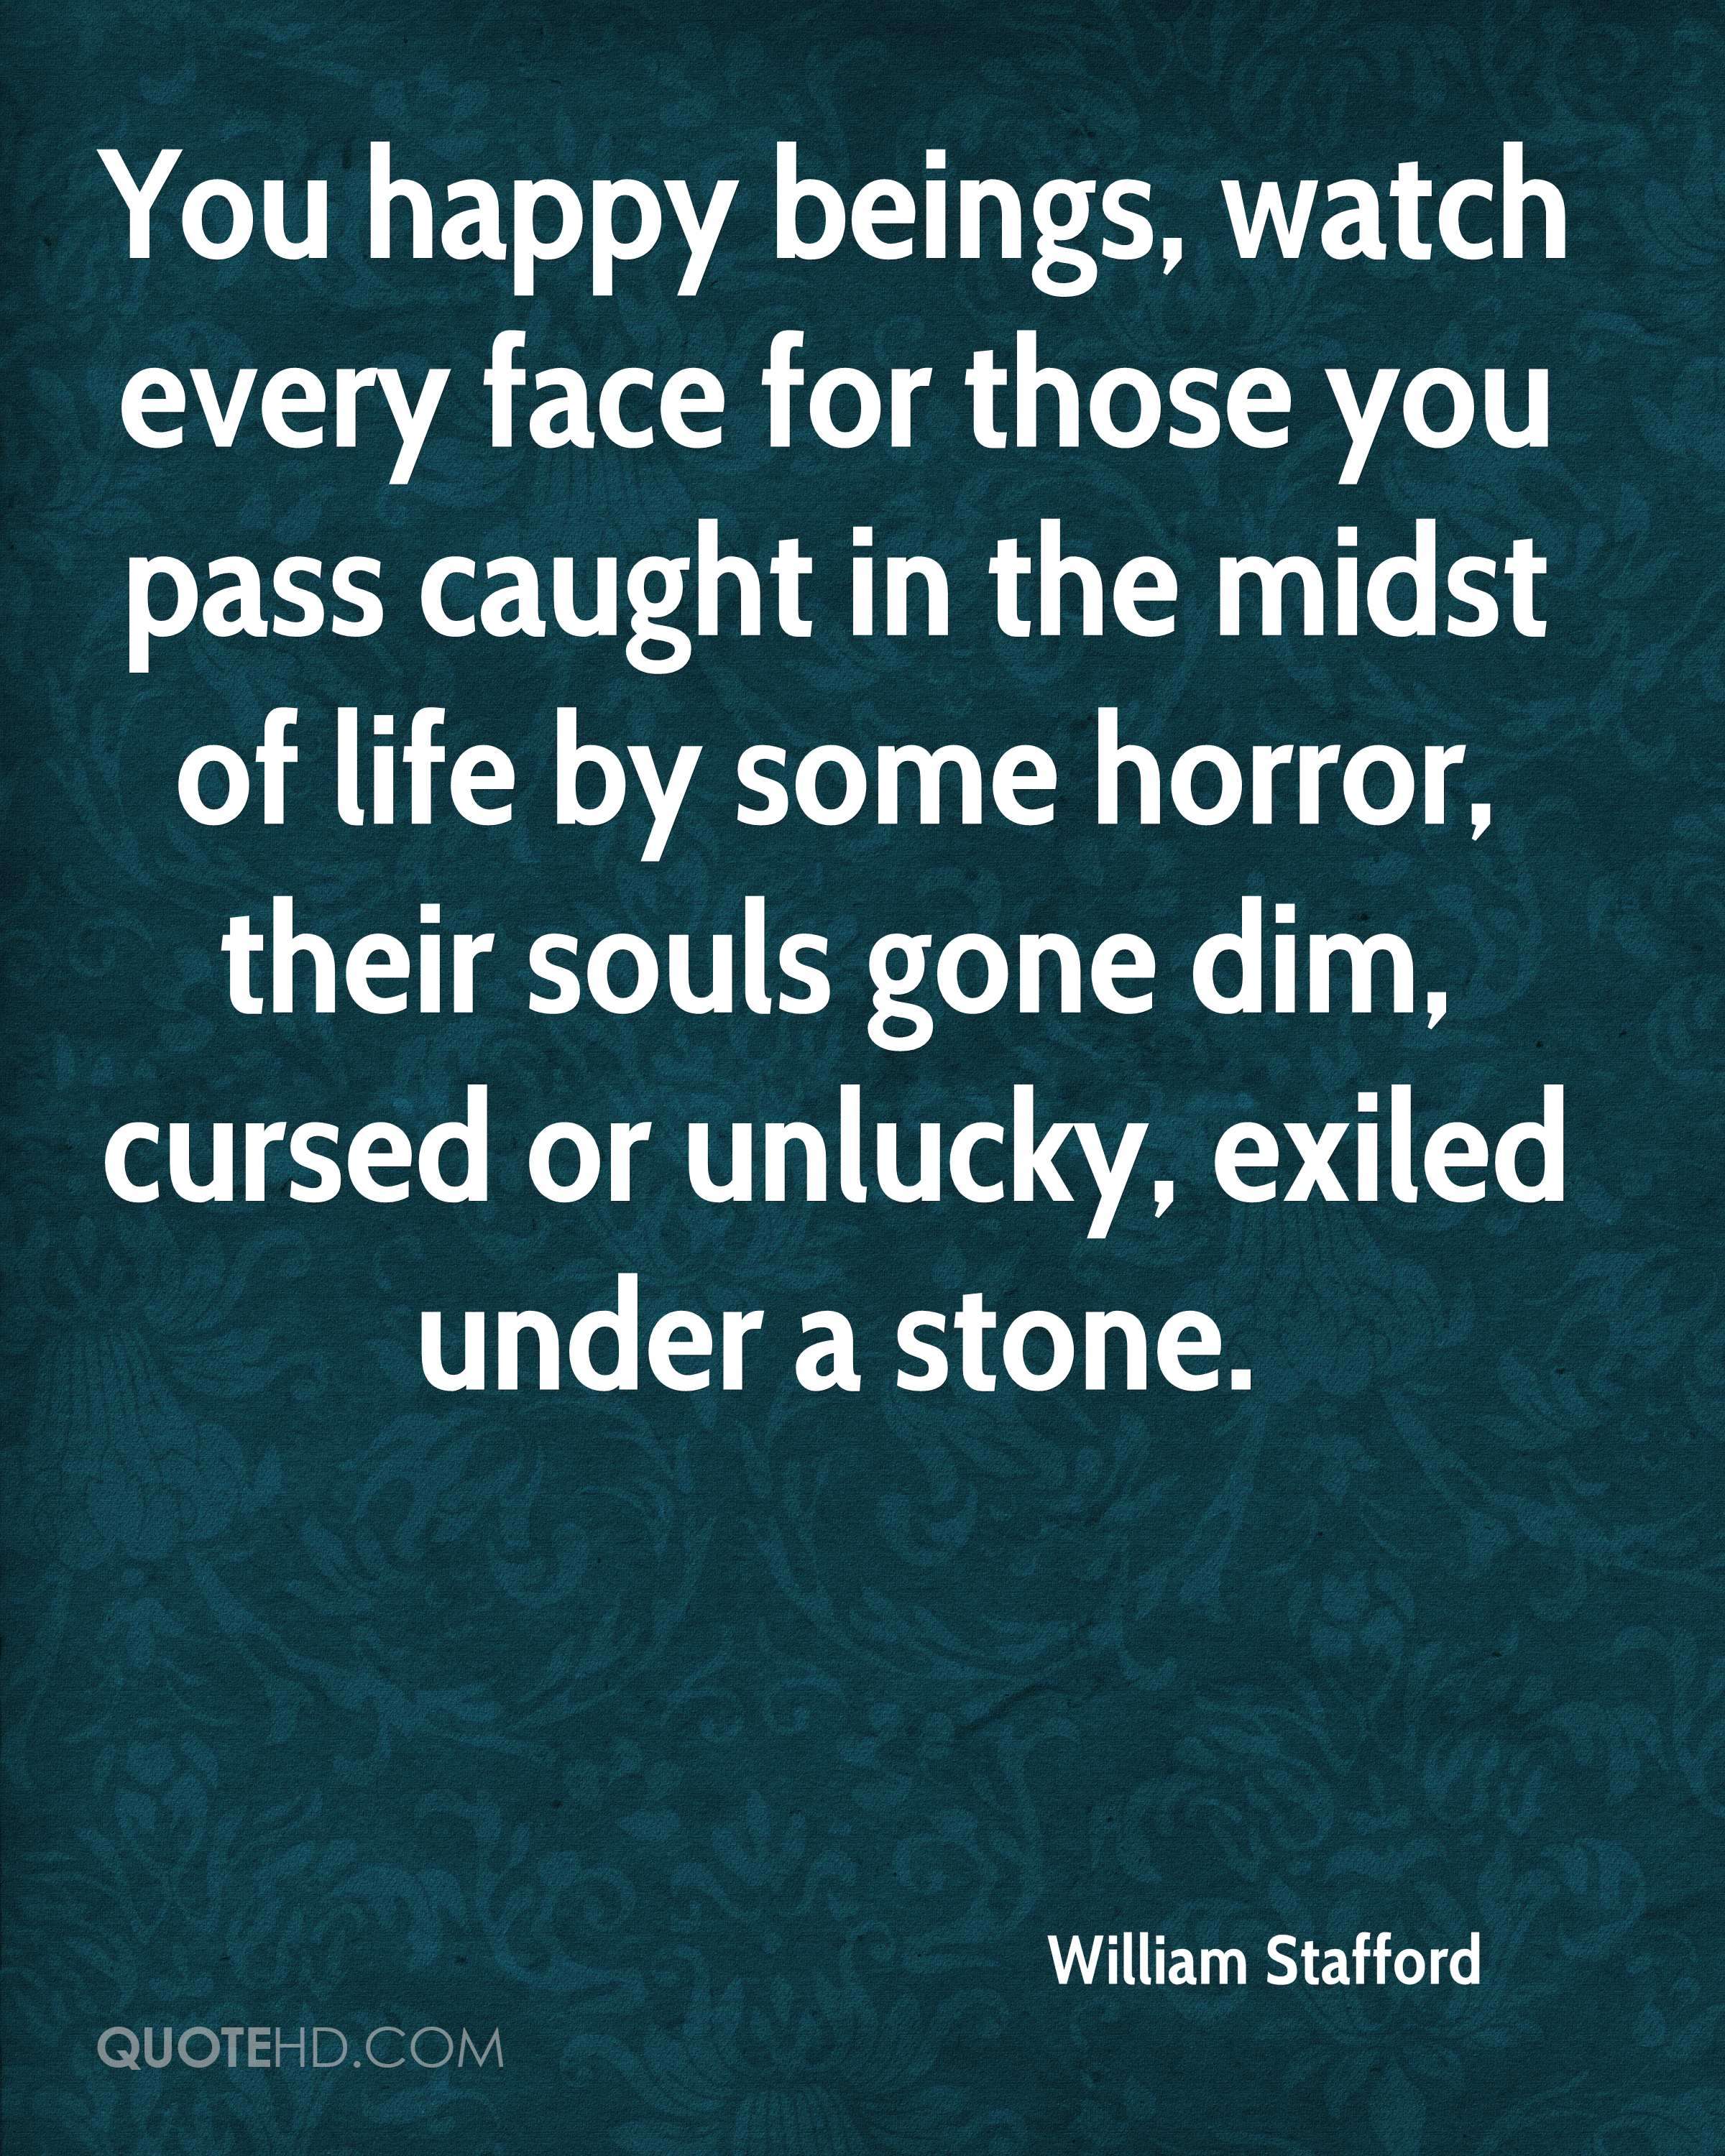 You happy beings, watch every face for those you pass caught in the midst of life by some horror, their souls gone dim, cursed or unlucky, exiled under a stone.